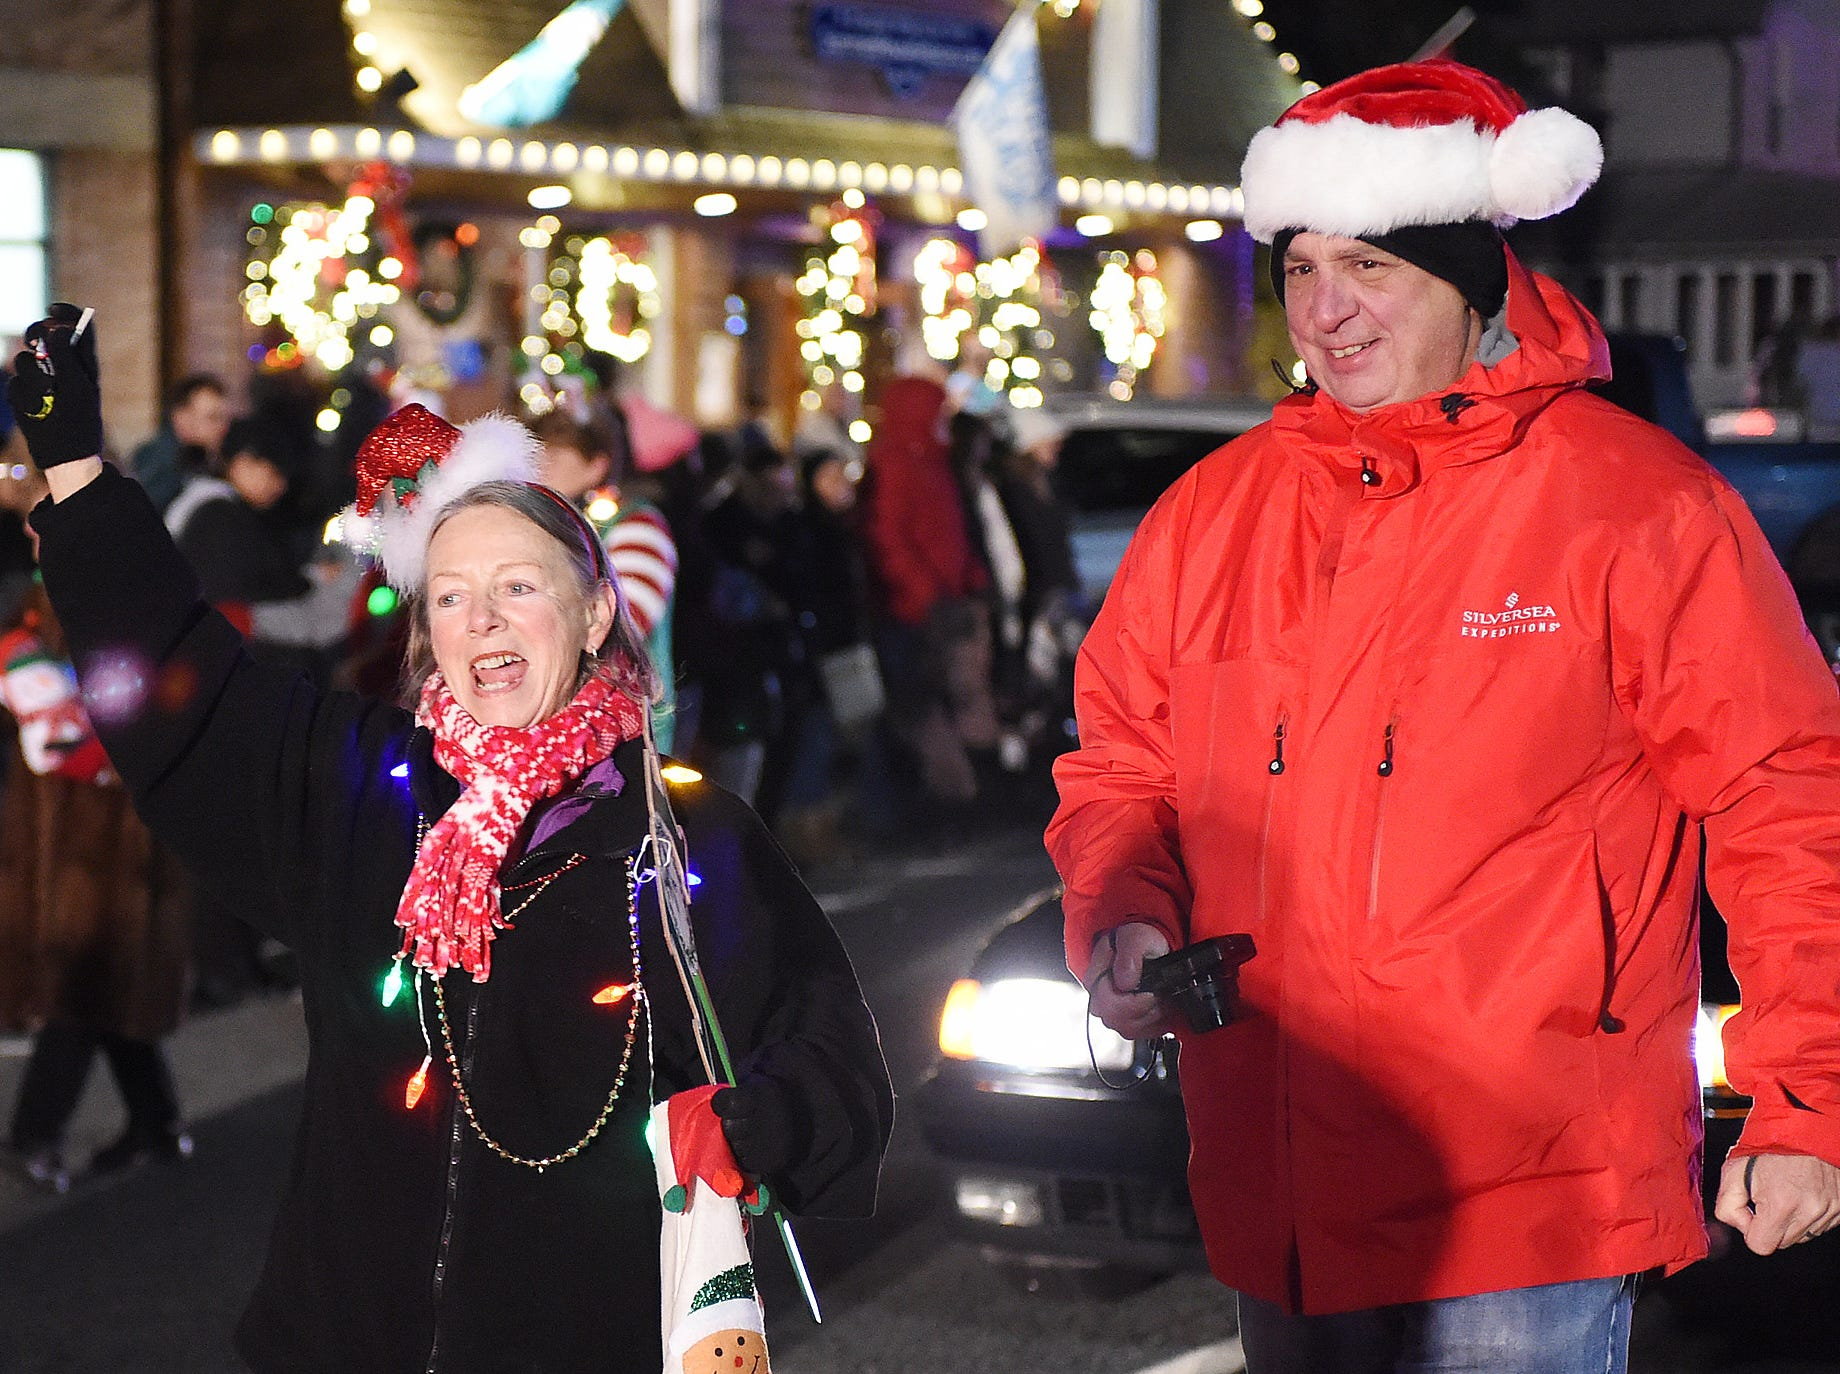 Rehoboth Beach held their Annual Hometown Christmas Parade on Tuesday December 5th in downtown Rehoboth with over 100 units participating to welcome Santa Claus for the Holiday Season. Special to the Daily Times / Chuck Snyder